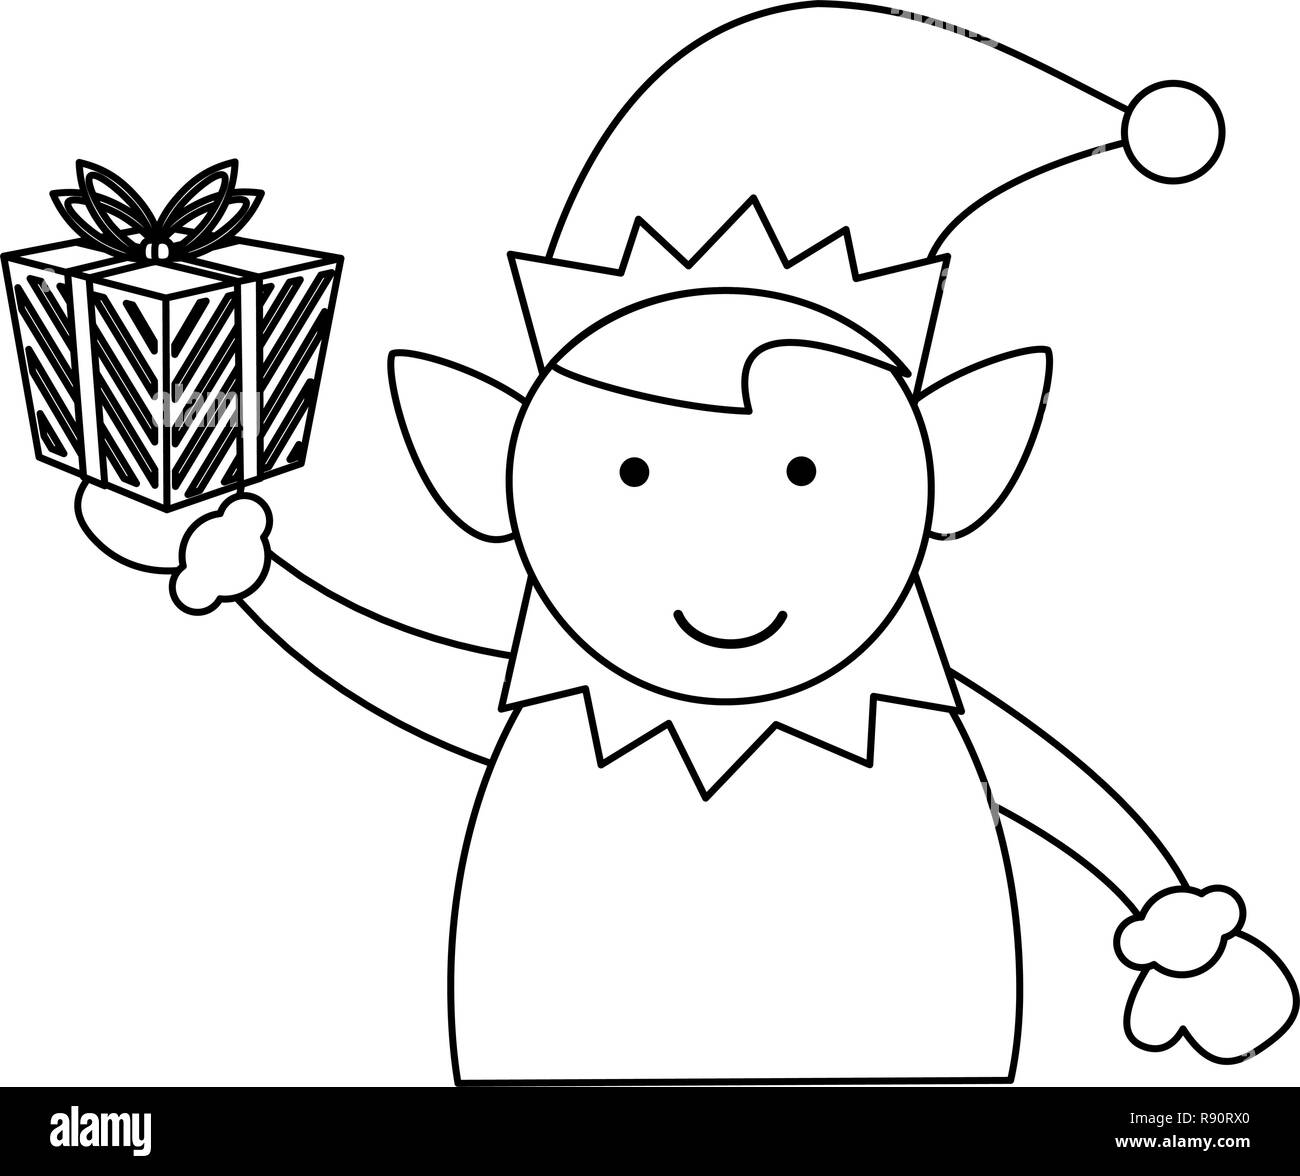 Christmas Elf Cartoon Black And White Stock Vector Art